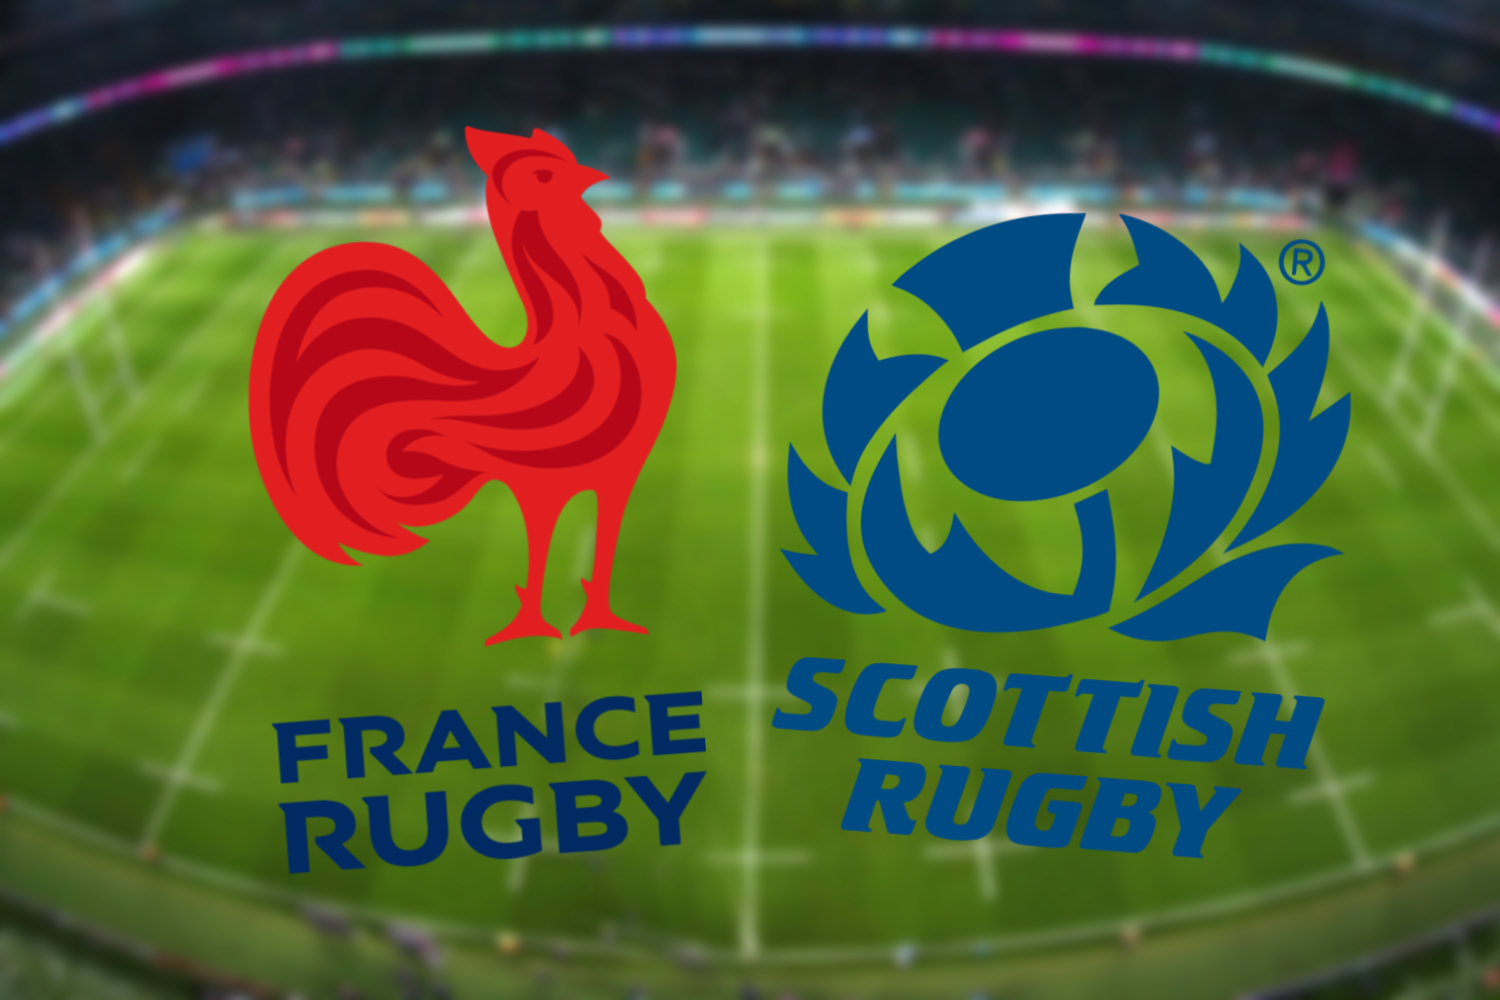 France vs Scotland, Six Nations 2021 rugby today: Teams, lineups, TV, live stream, kick off time, h2h, odds